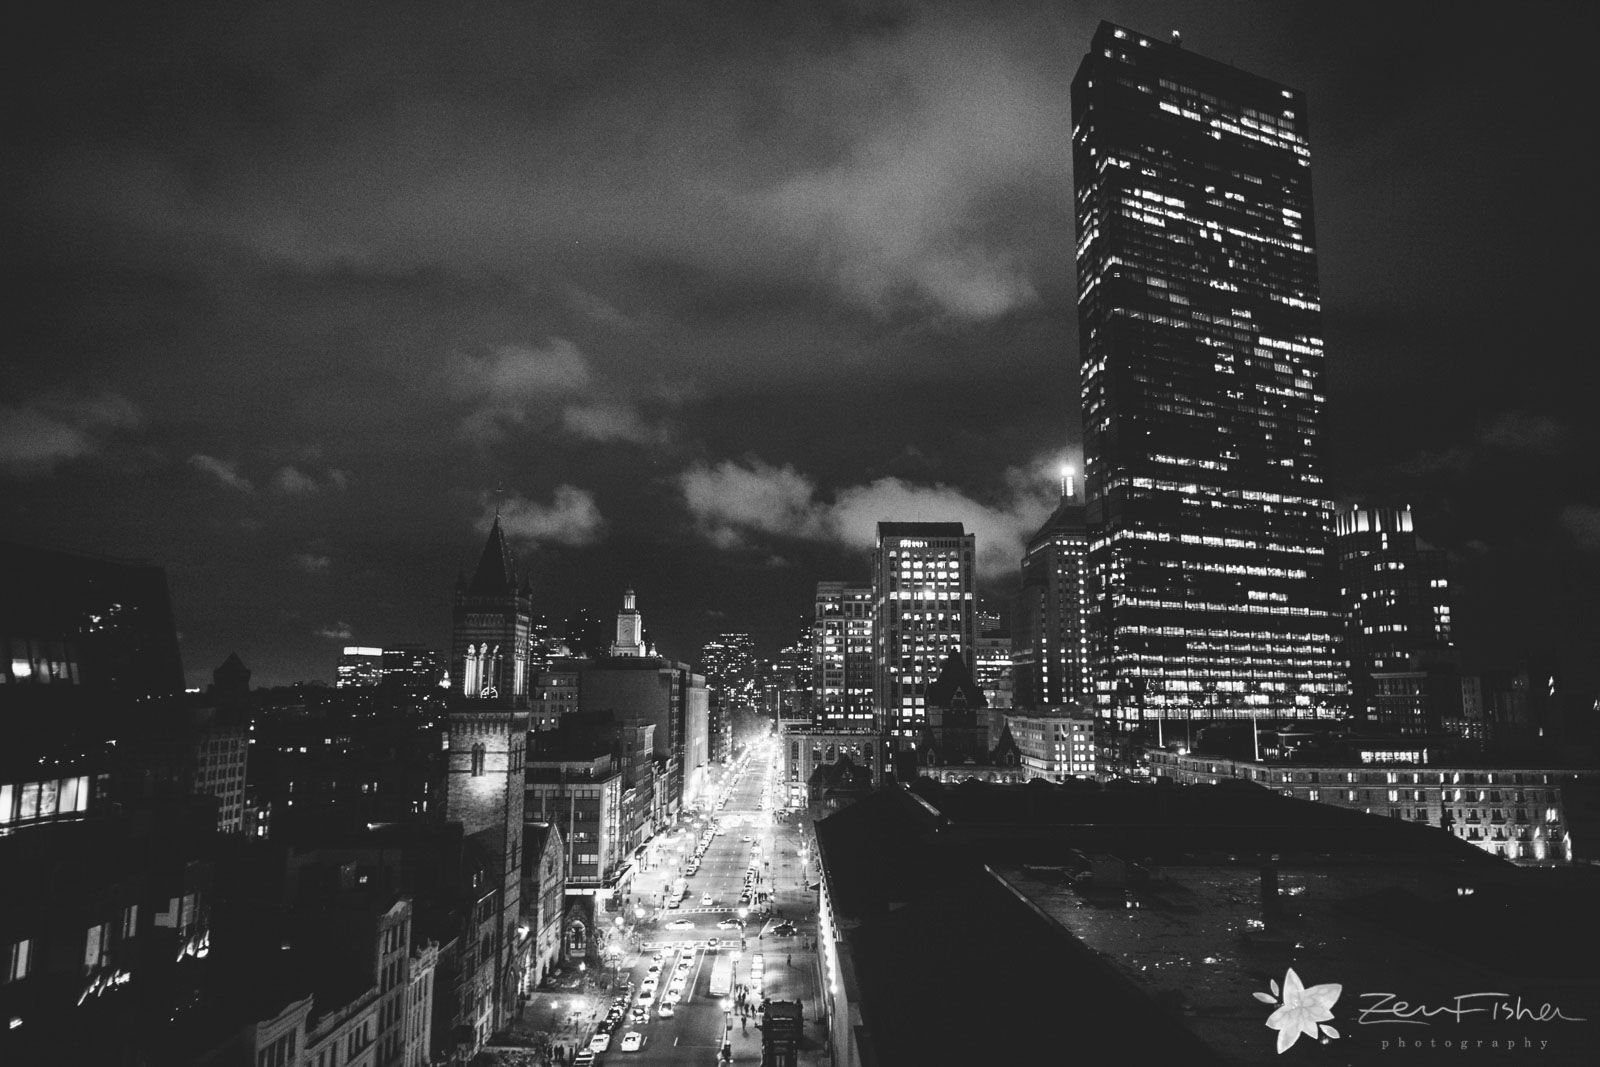 The striking view from the Lenox Hotel of the Boston skyline at night, in black and white.